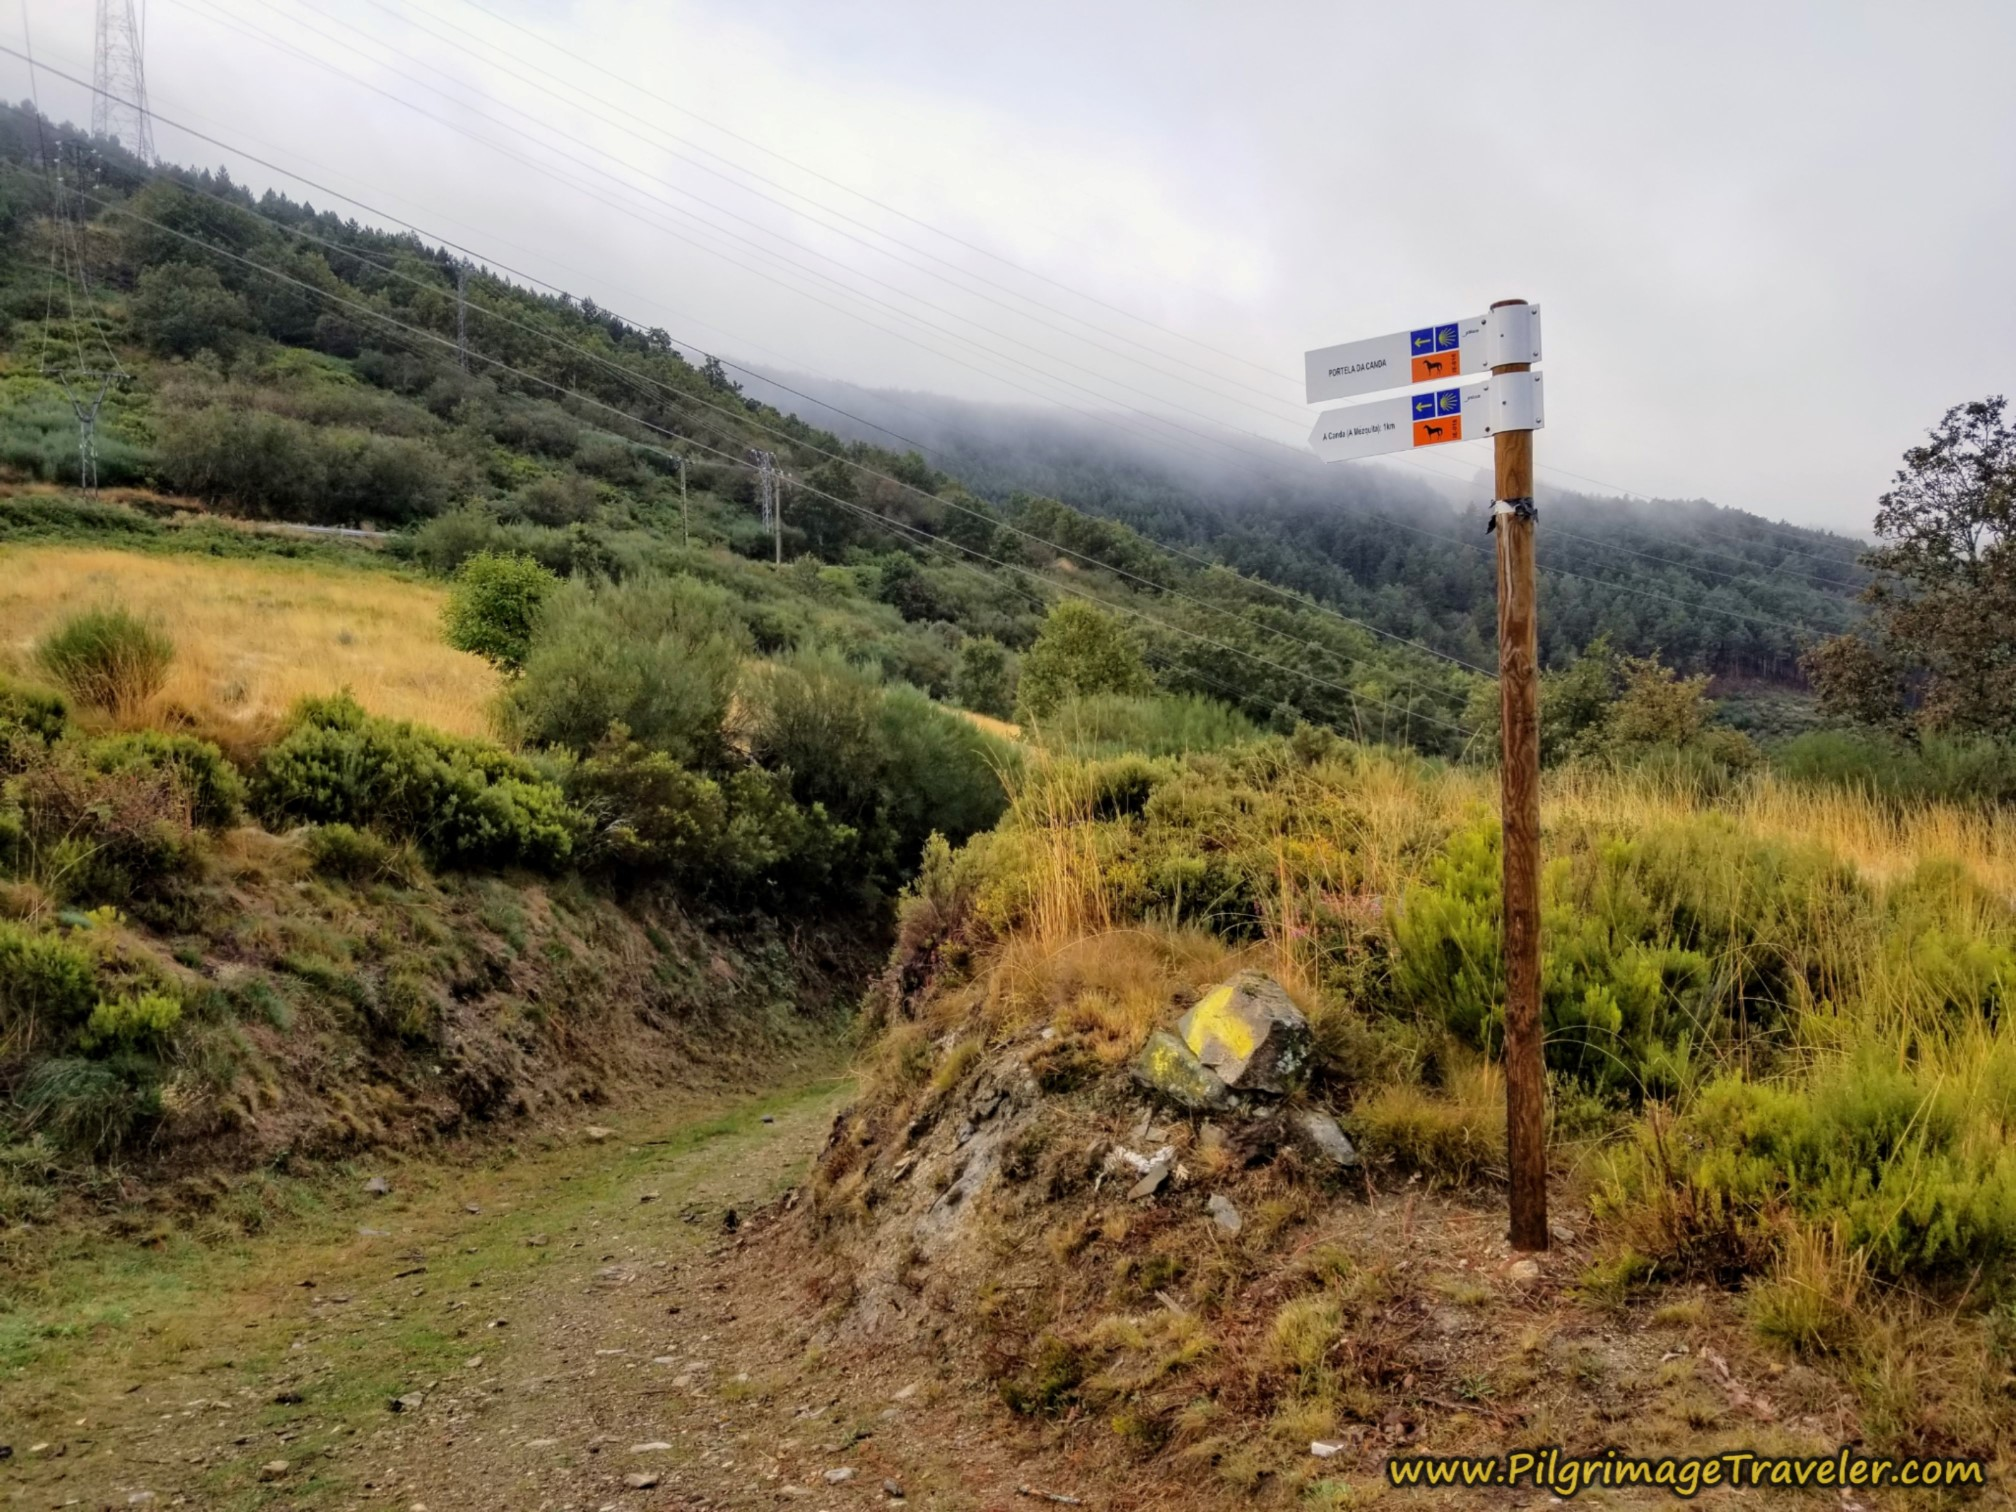 This Way Down from the Alto da Canda on the Camino Sanabrés from Lubián to A Gudiña